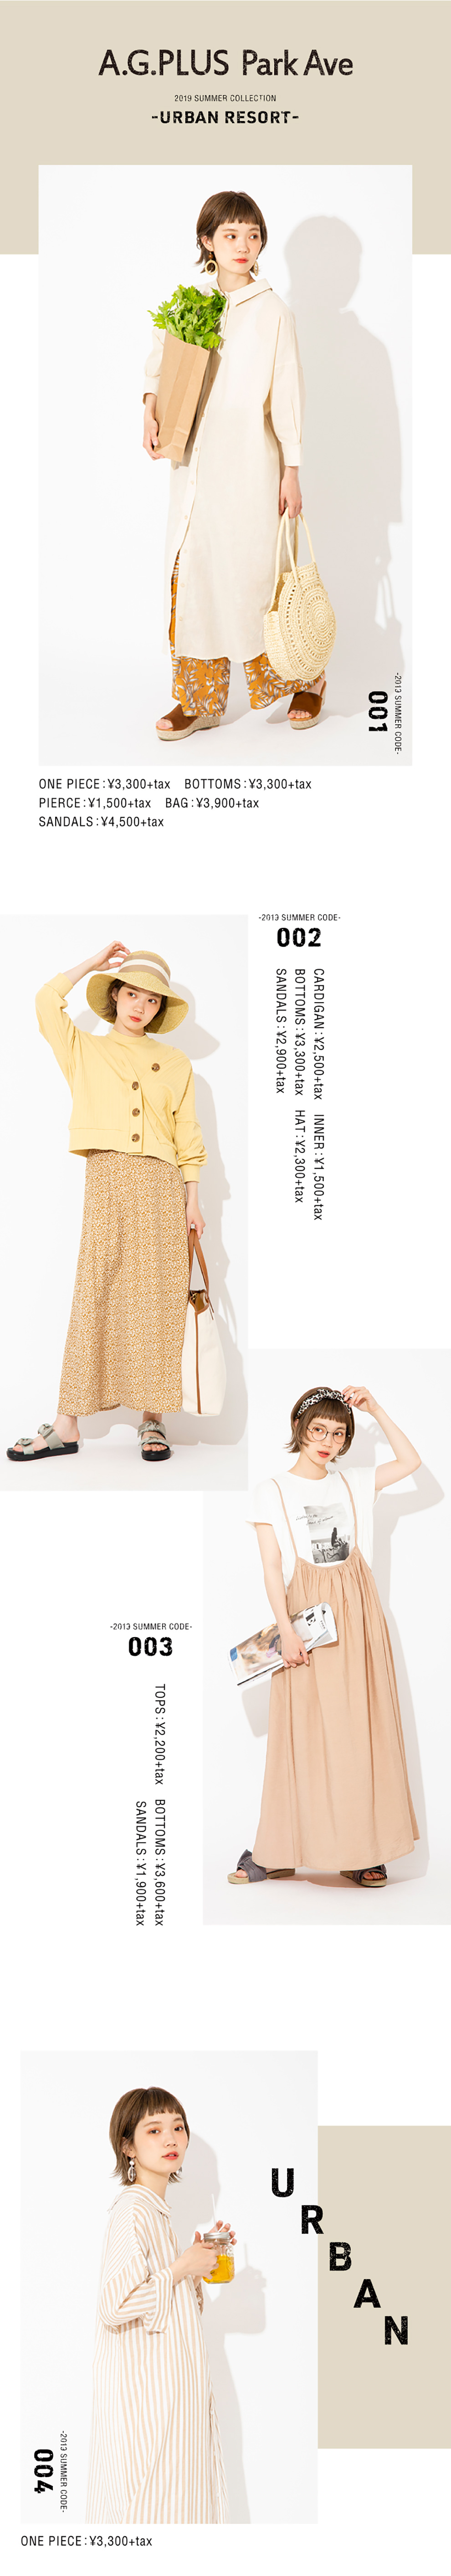 "【A.G.PLUS Park Ave】2019 summer LOOKカタログ ""URBAN RESORT"""